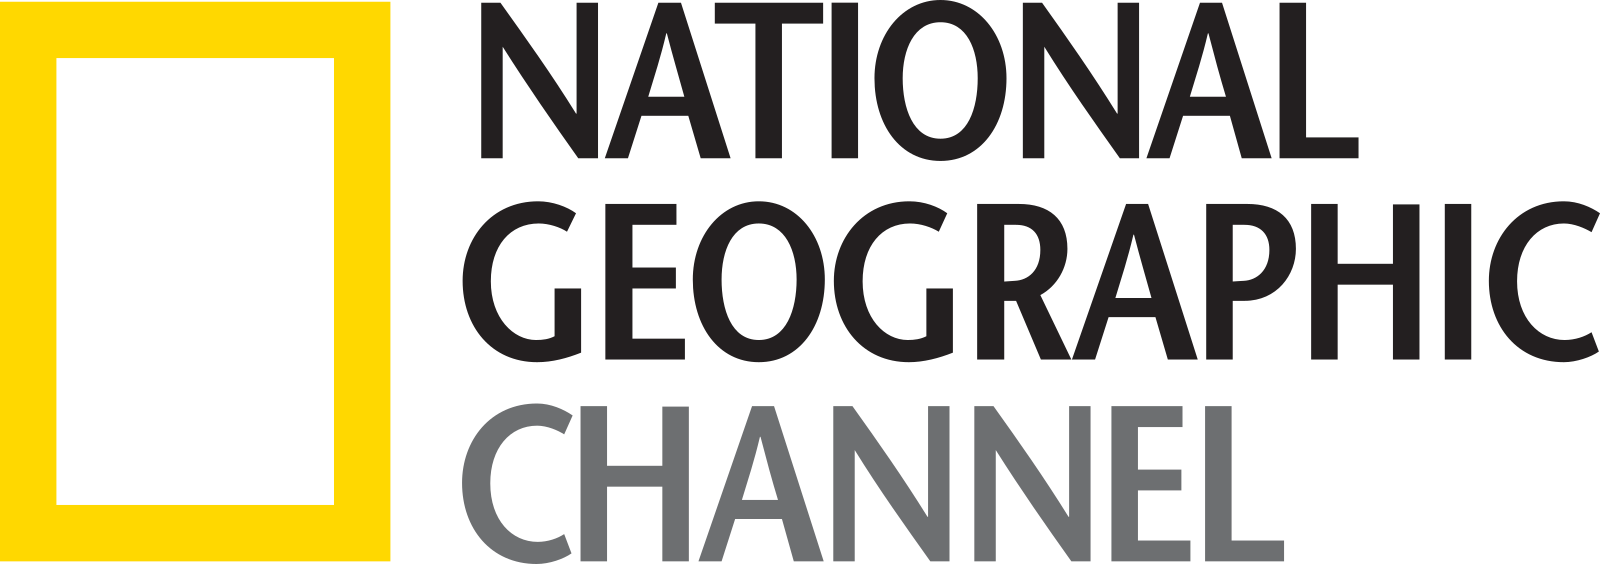 national geographic channel logo.